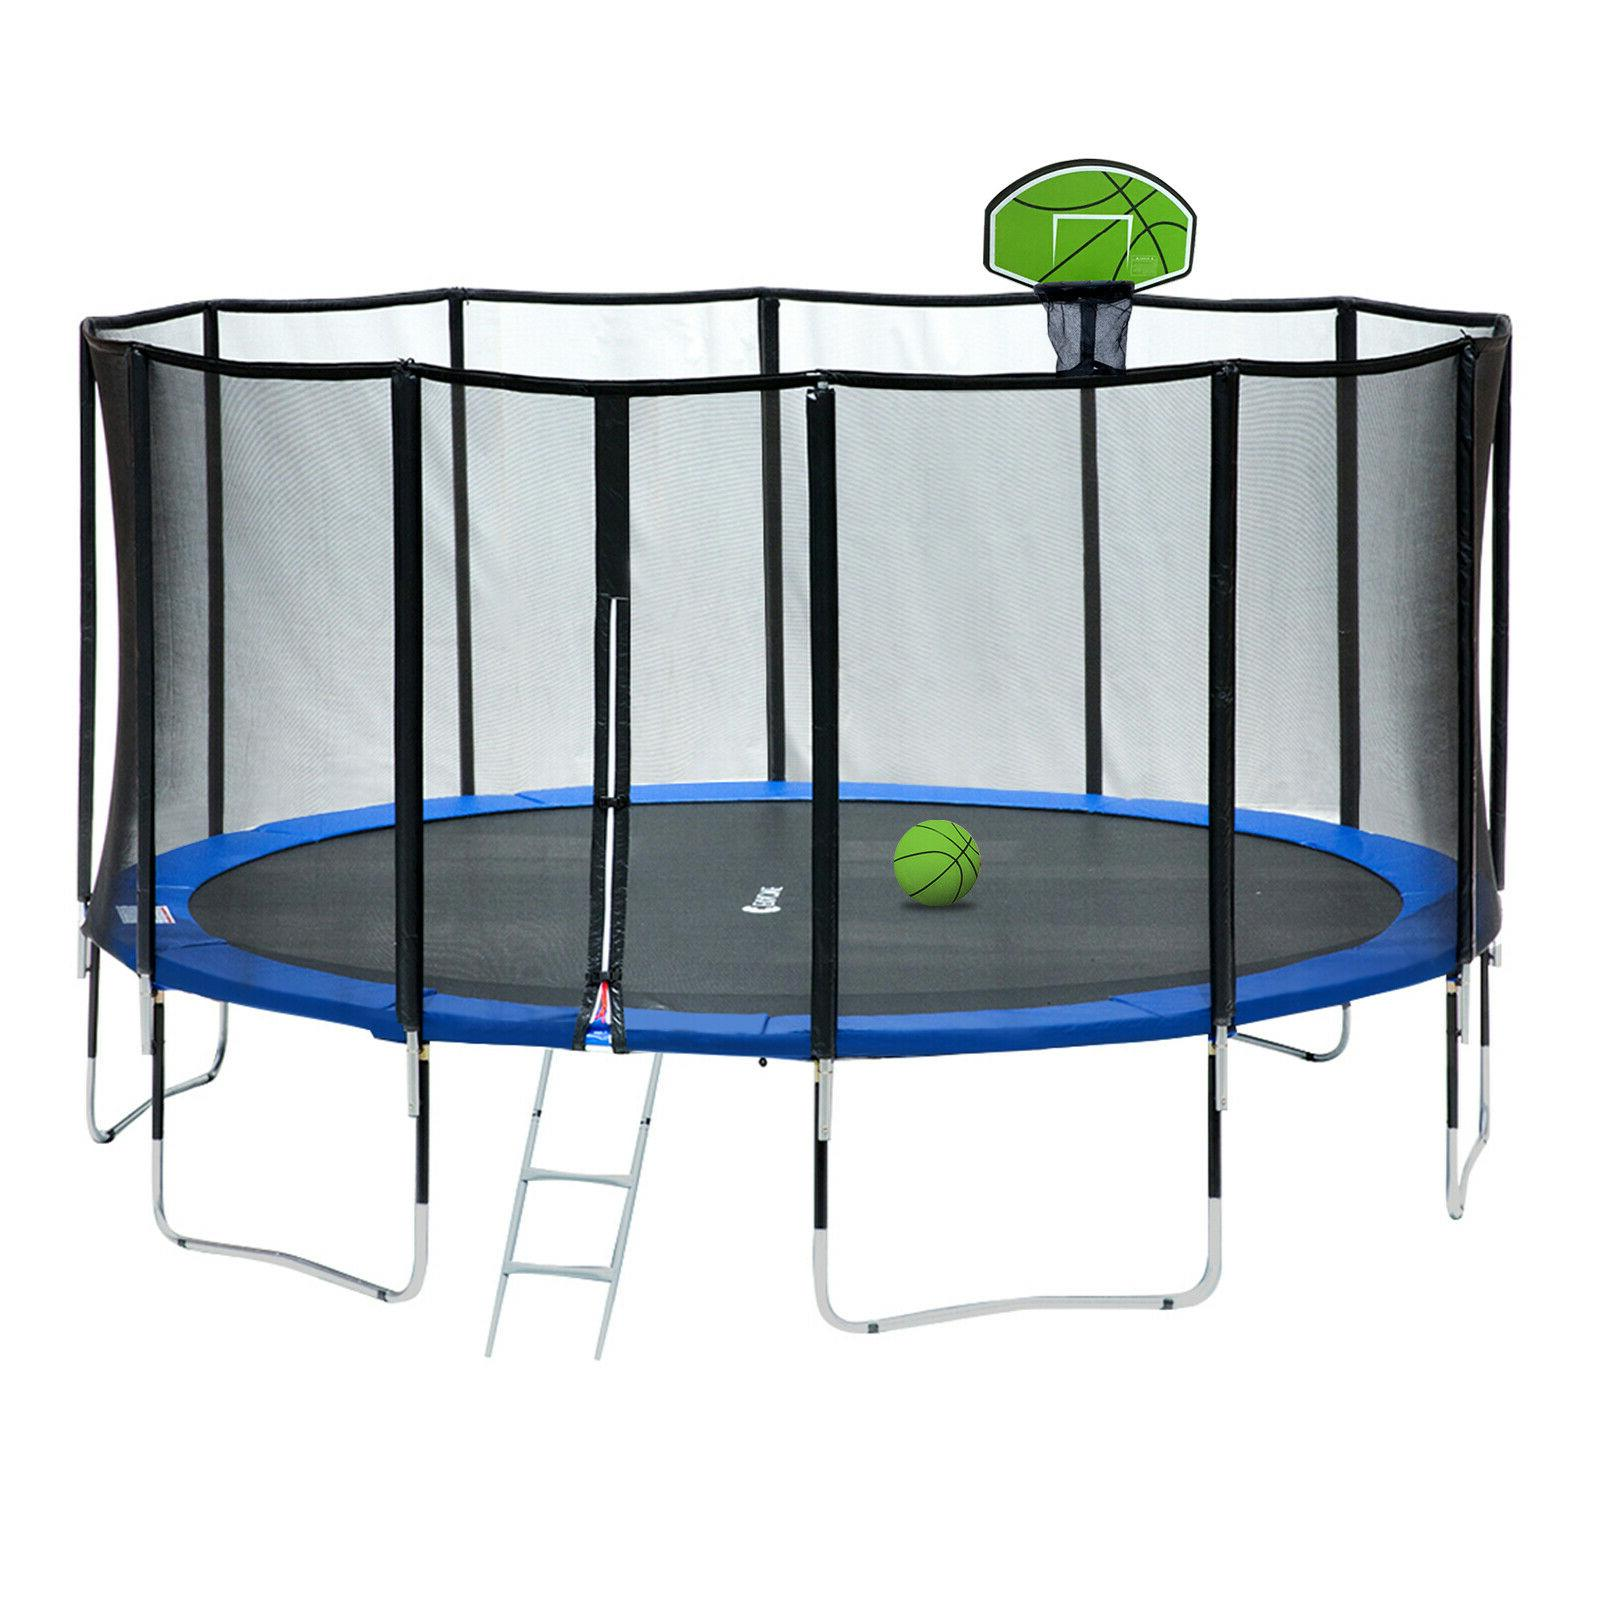 Exacme 15 FT Trampoline 400 Weight Limit& Top